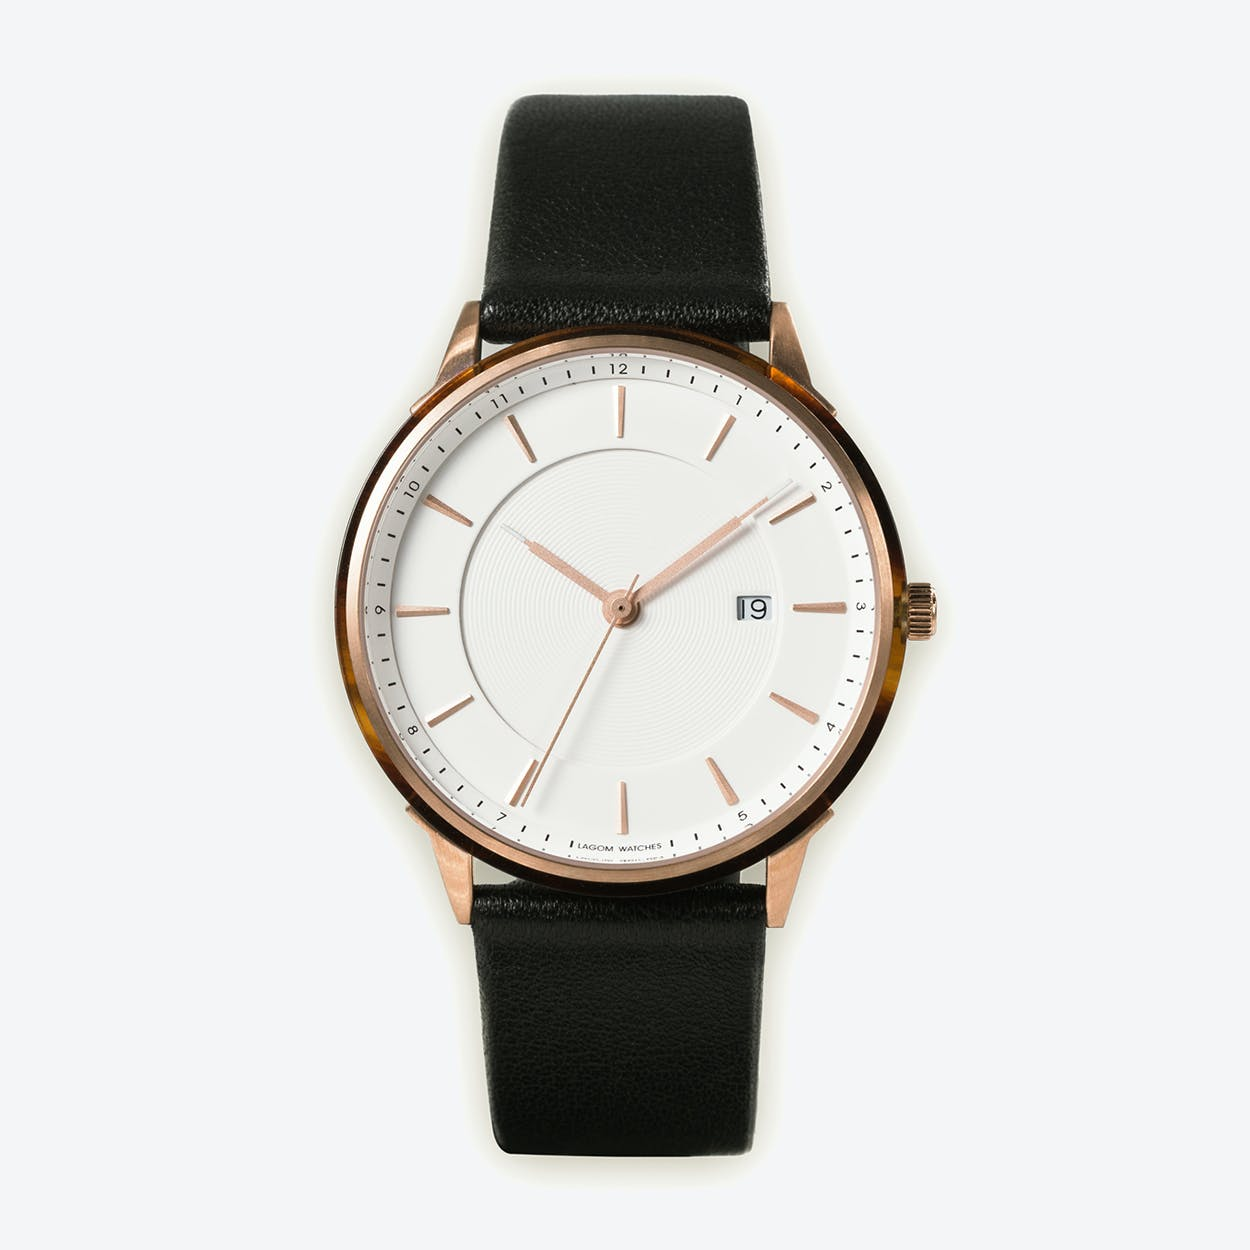 BÖRJA - Rose Gold Watch in Offwhite Face and Black Leather Strap